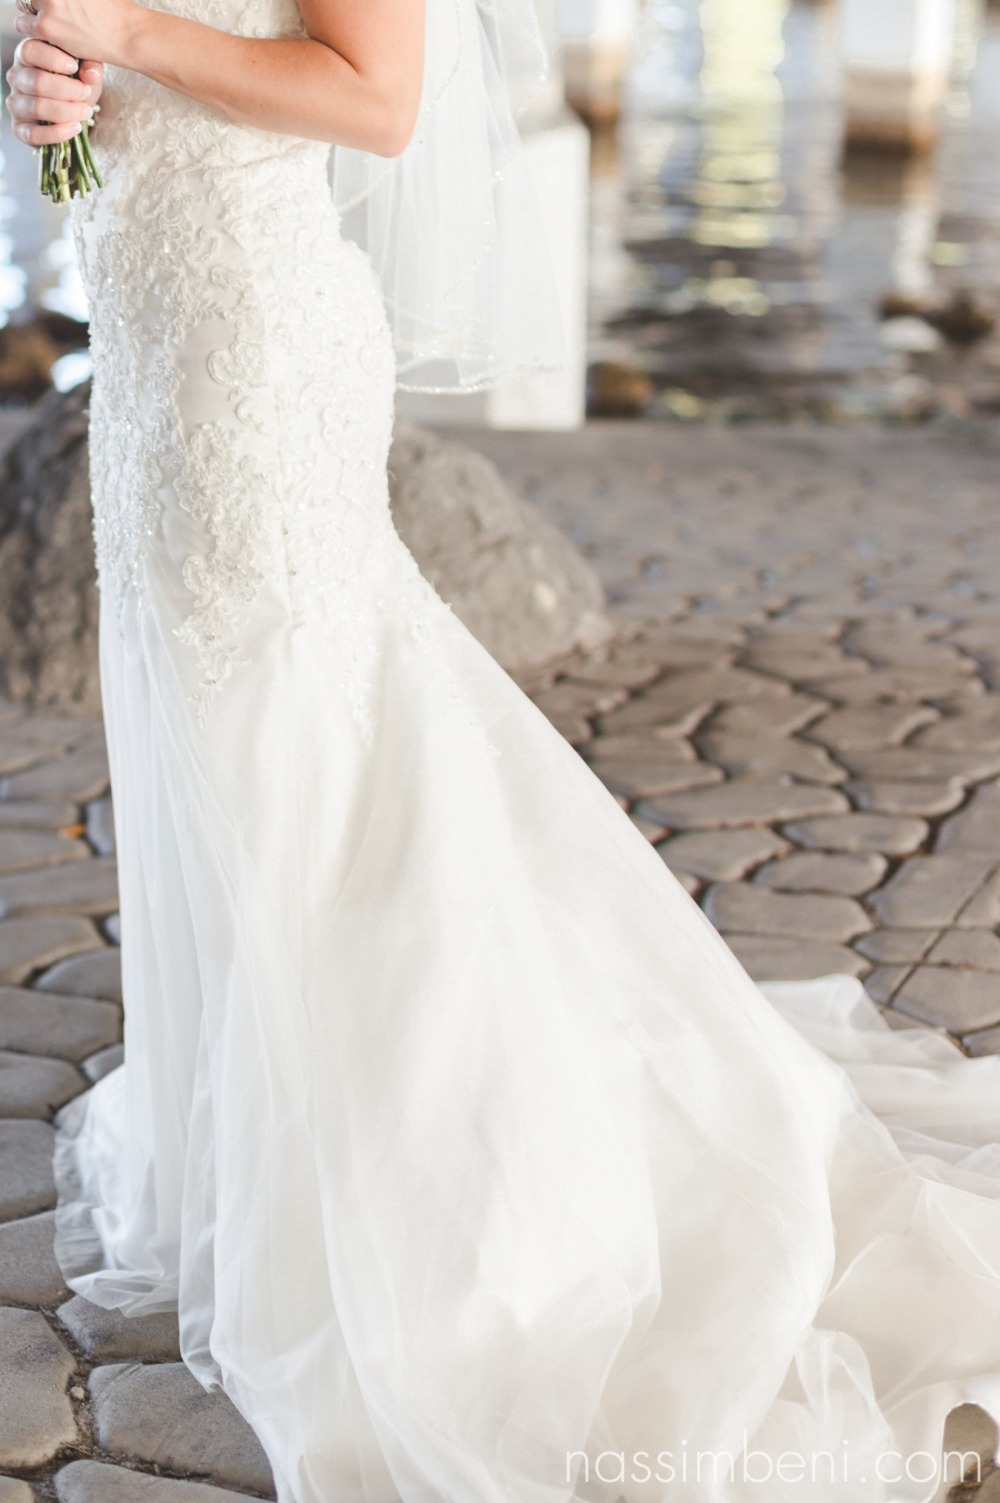 aurora unique bridal boutique wedding gown at crane creek promenade park by nassimbeni photography